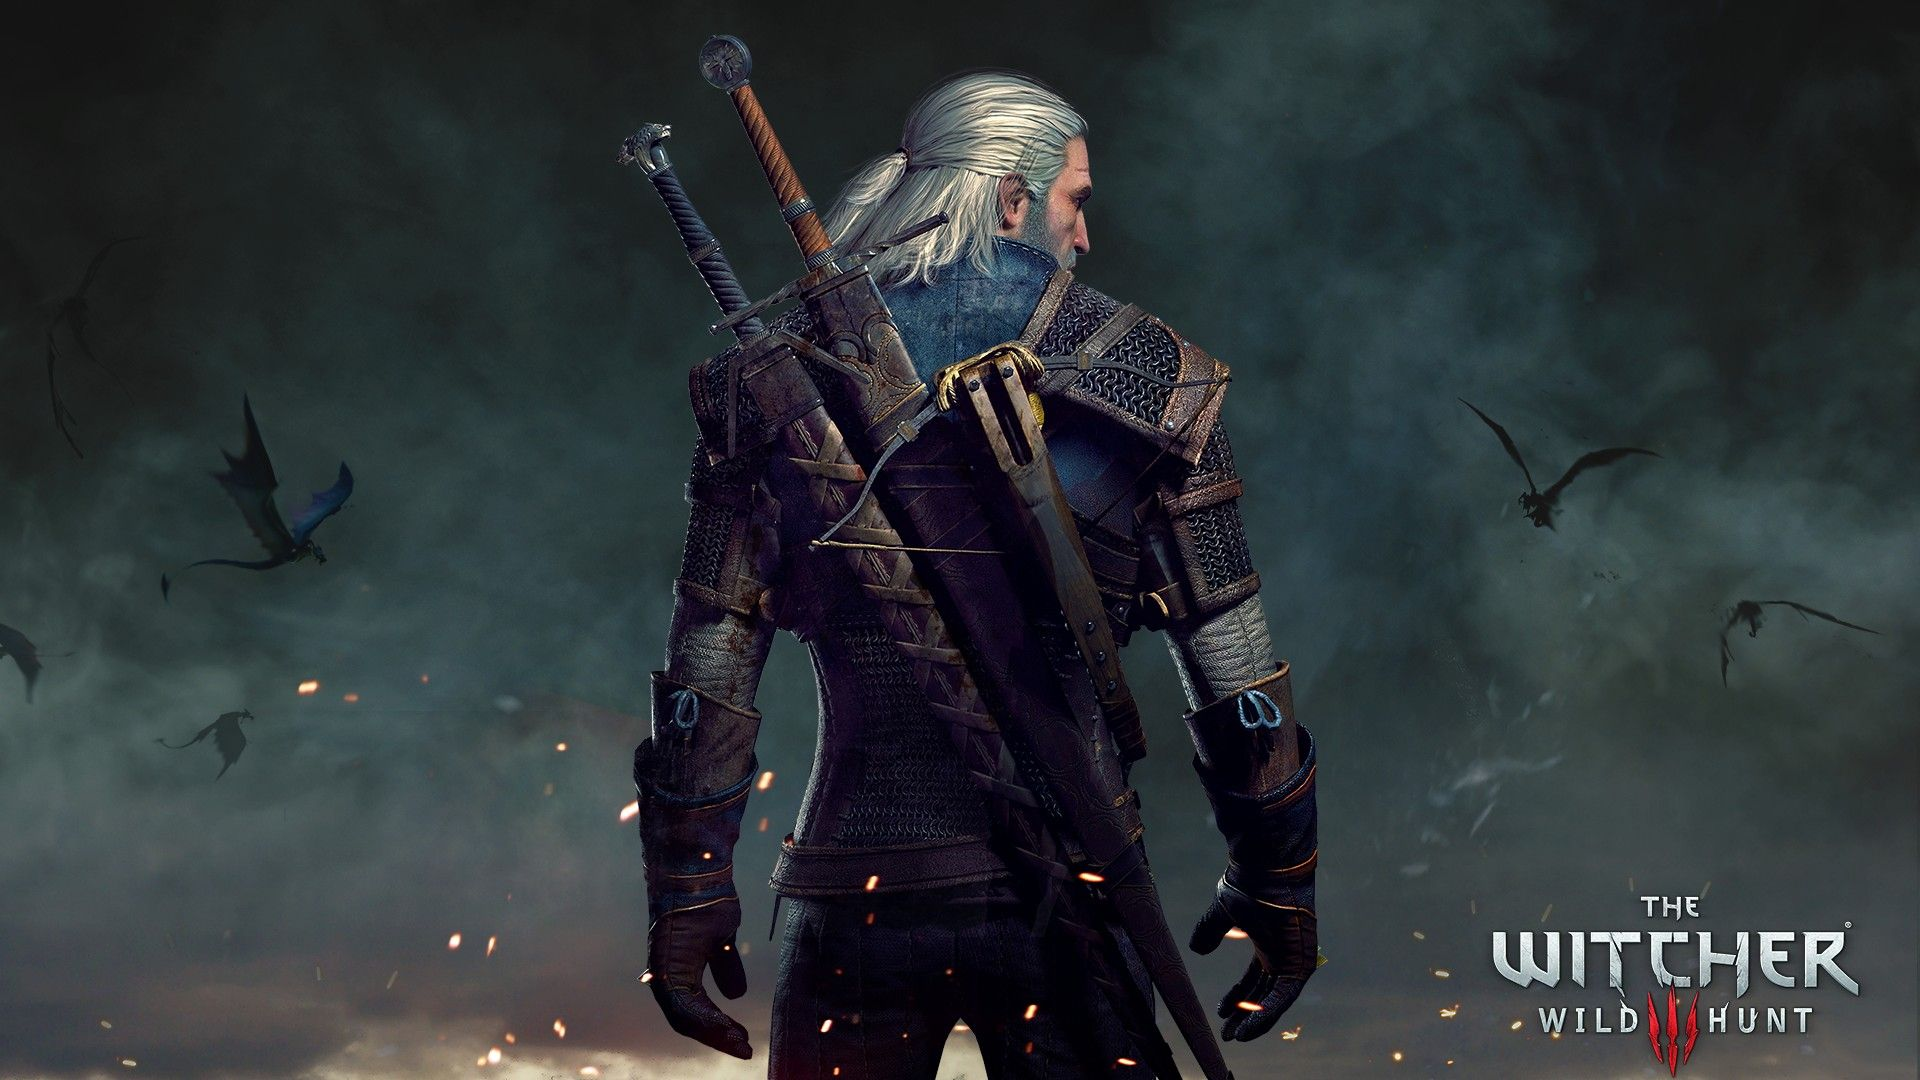 Wallpapers Computer The Witcher 2021 Live Wallpaper Hd The Witcher The Witcher 3 Witcher 3 Wild Hunt